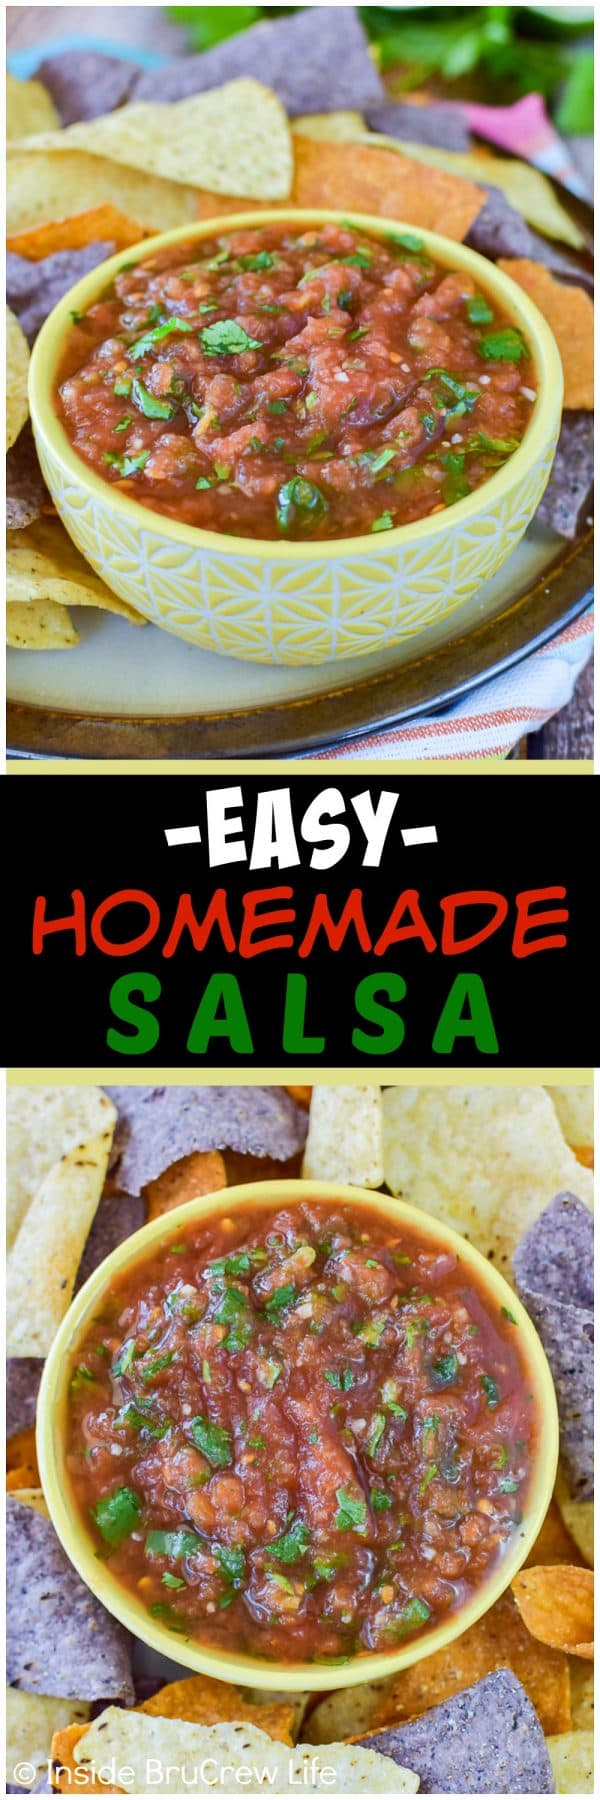 Easy Homemade Salsa - use onions, cilantro, and canned tomatoes for the best simple salsa! Great dip recipe for chips or adding to dinners! #salsa #homemade #chipsanddip #tomatoes #recipe